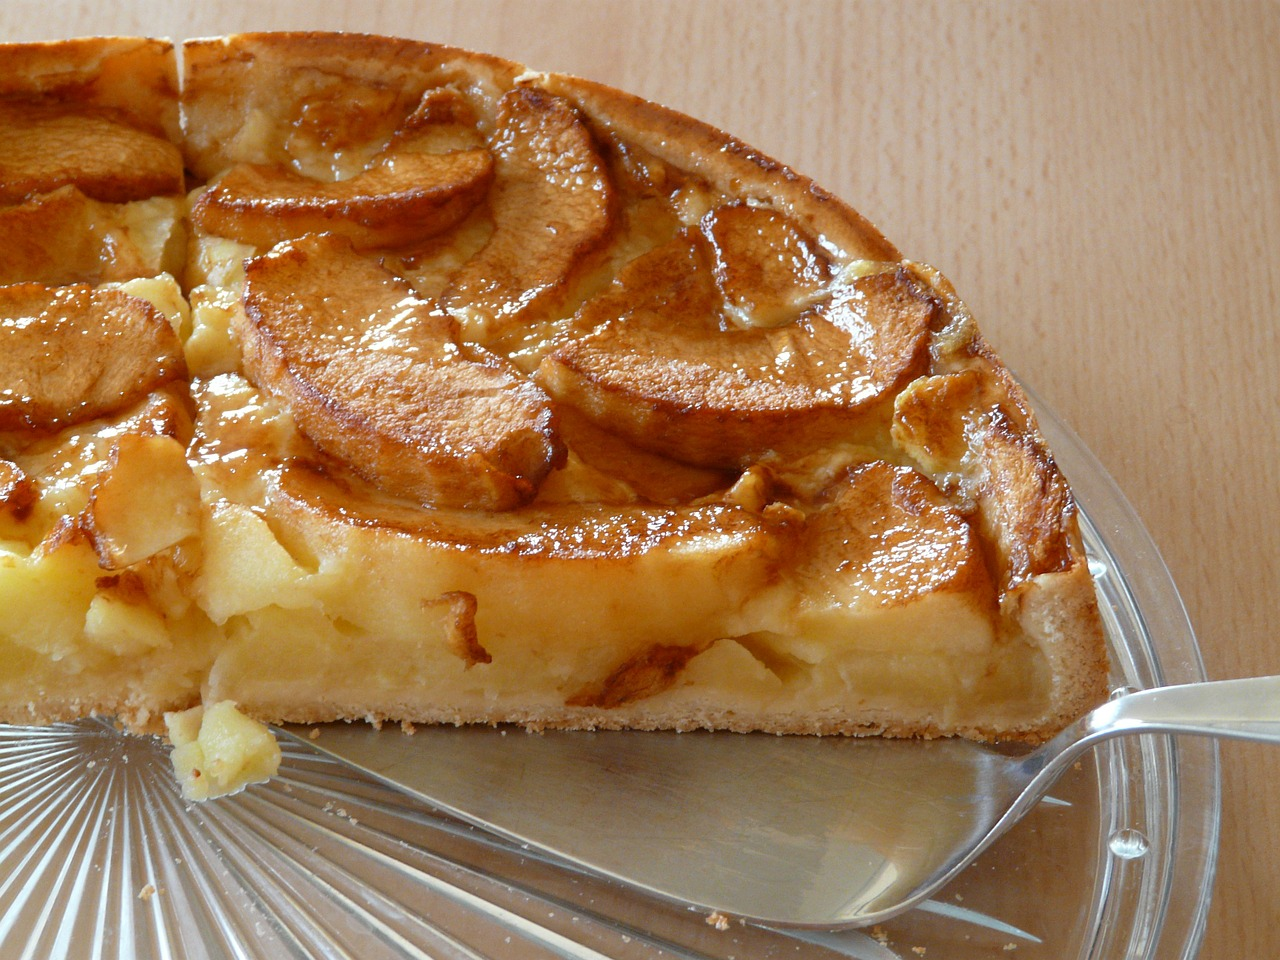 Step by Step: How to Make the Classic Apple Pie